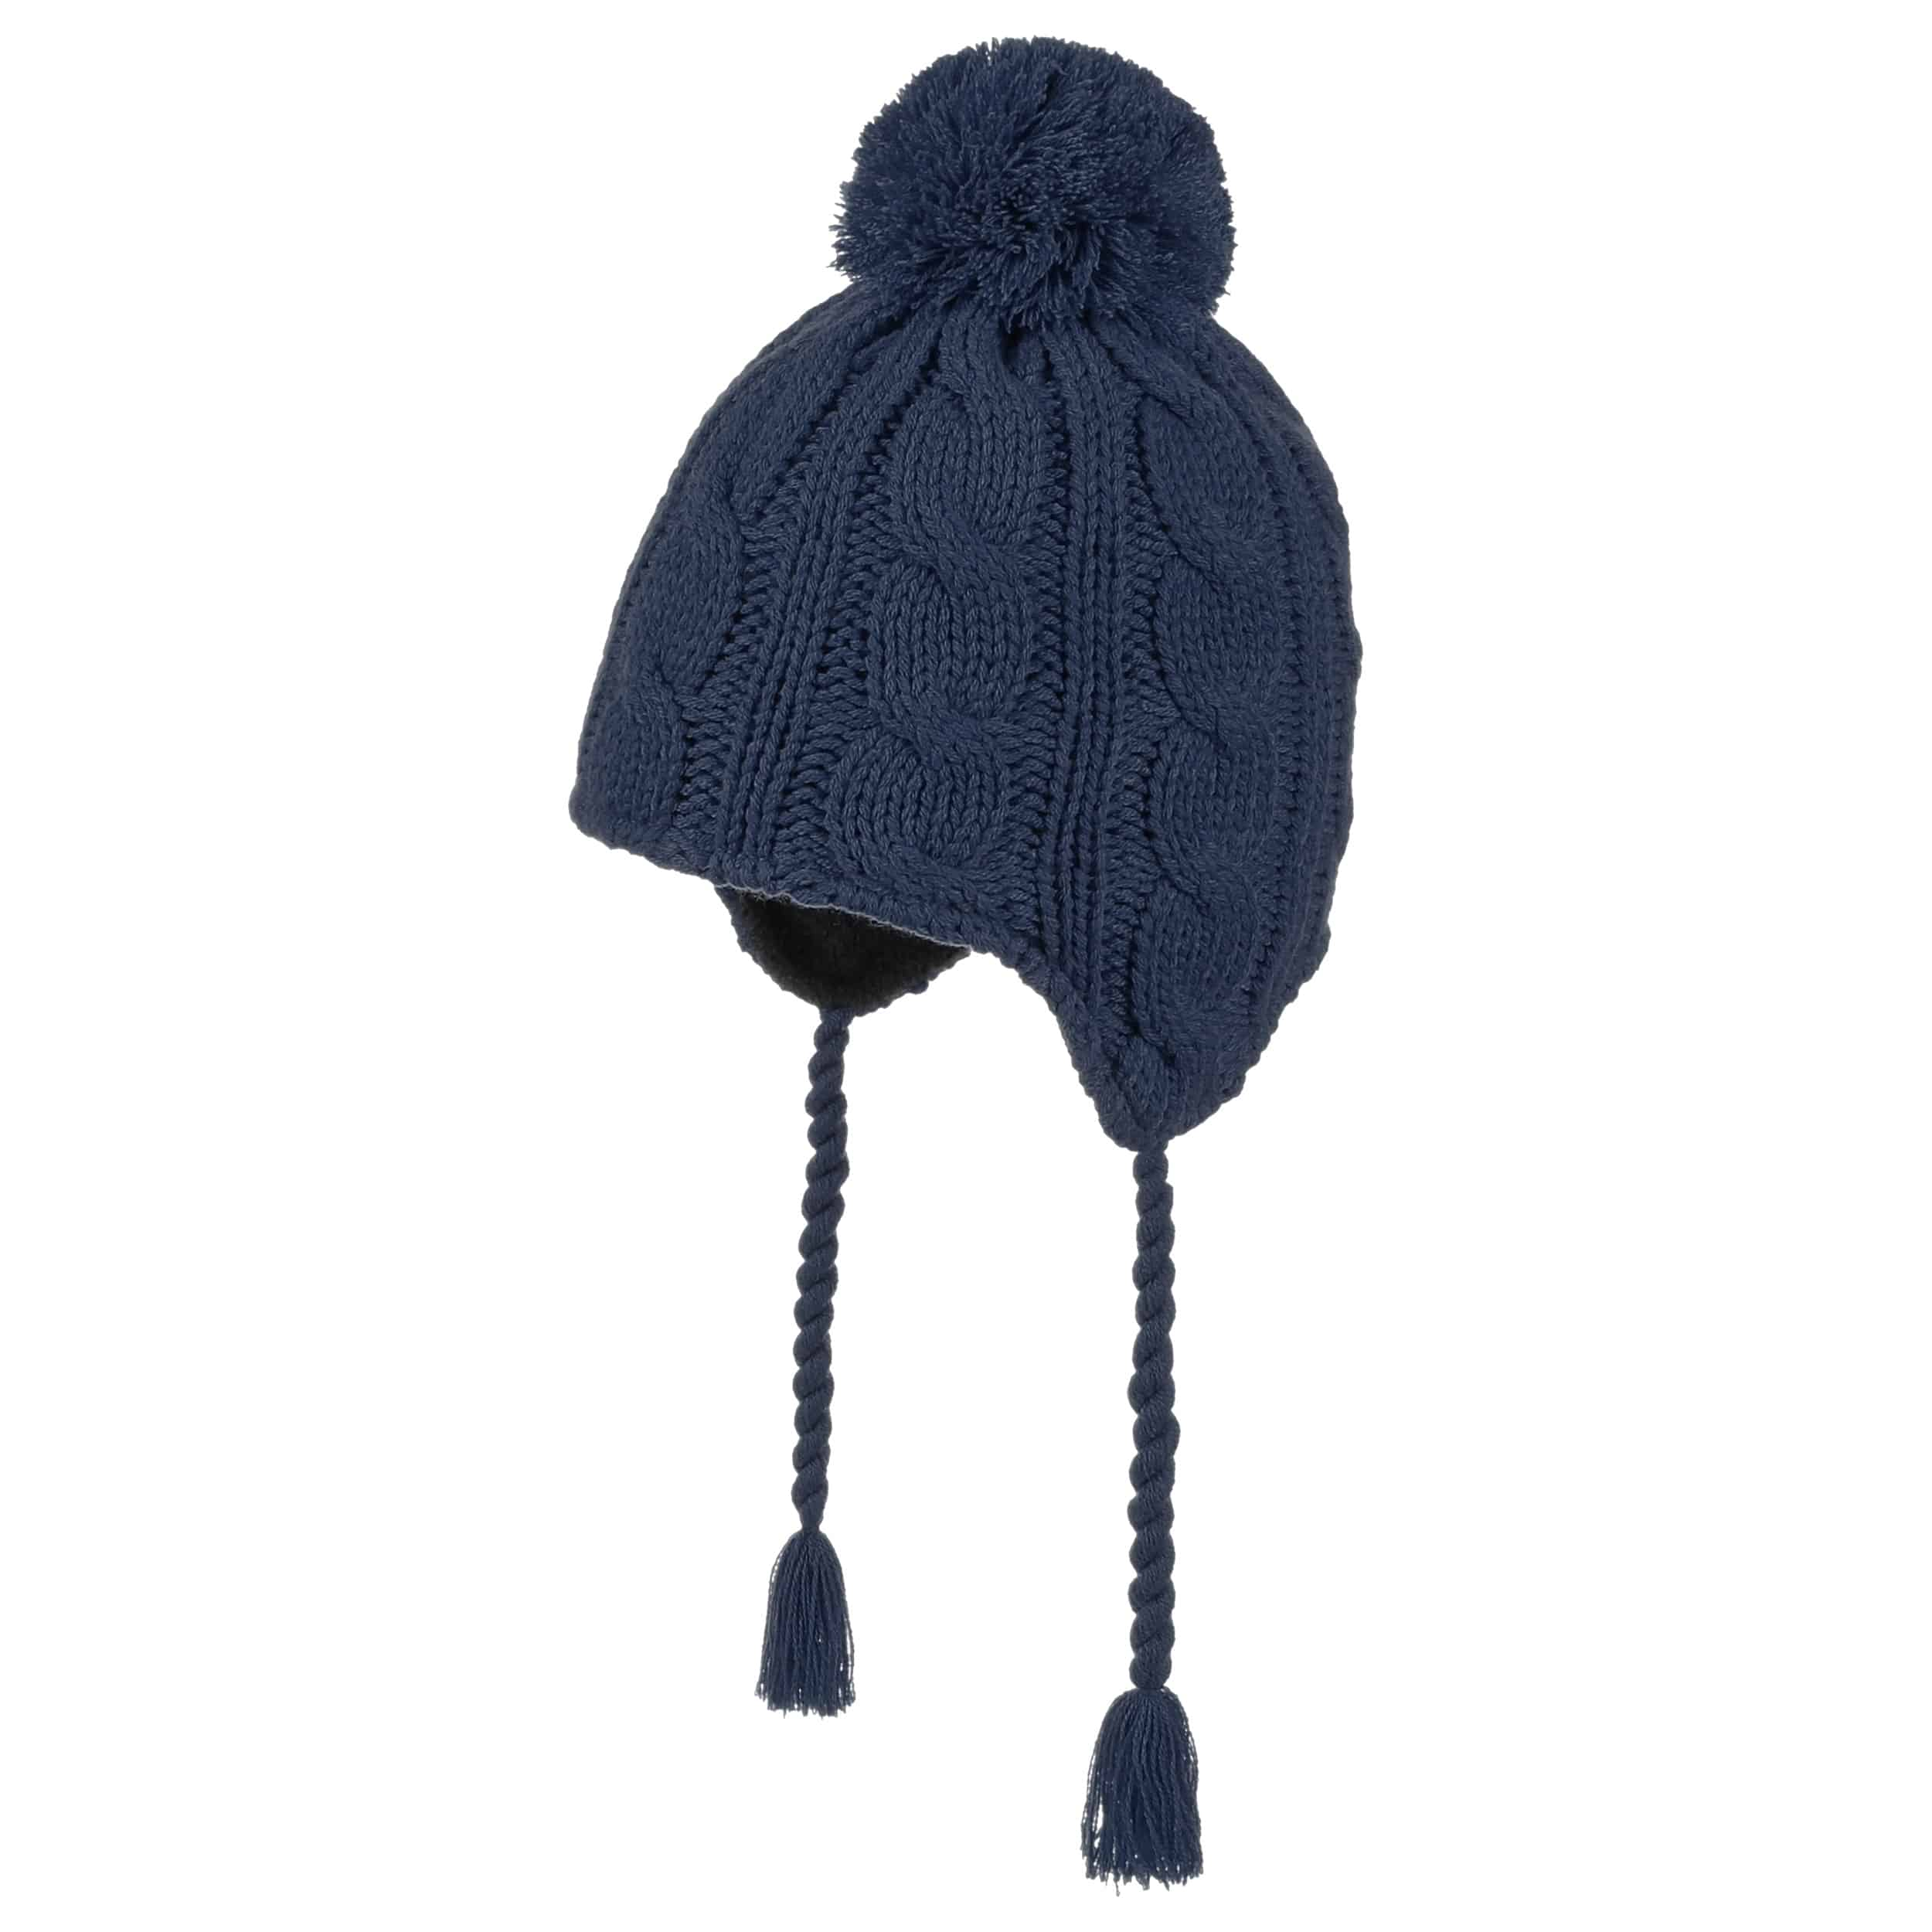 8d2330ff266 ... Peruvian Cable Knit Hat by Döll - navy 3 ...